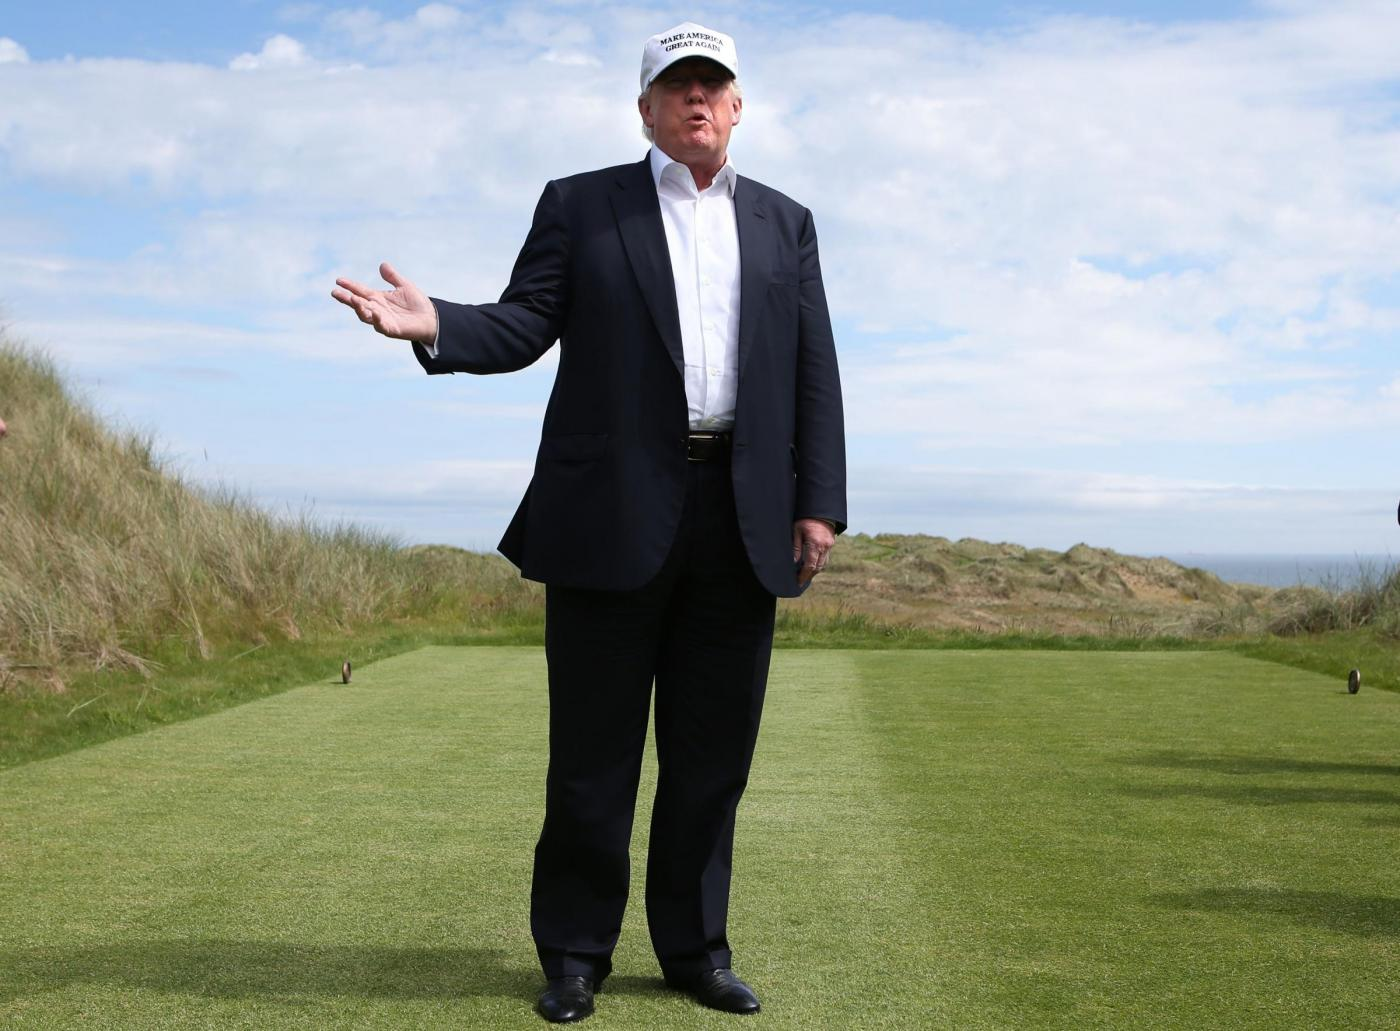 Donald Trump e lo sport: dal wrestling al golf